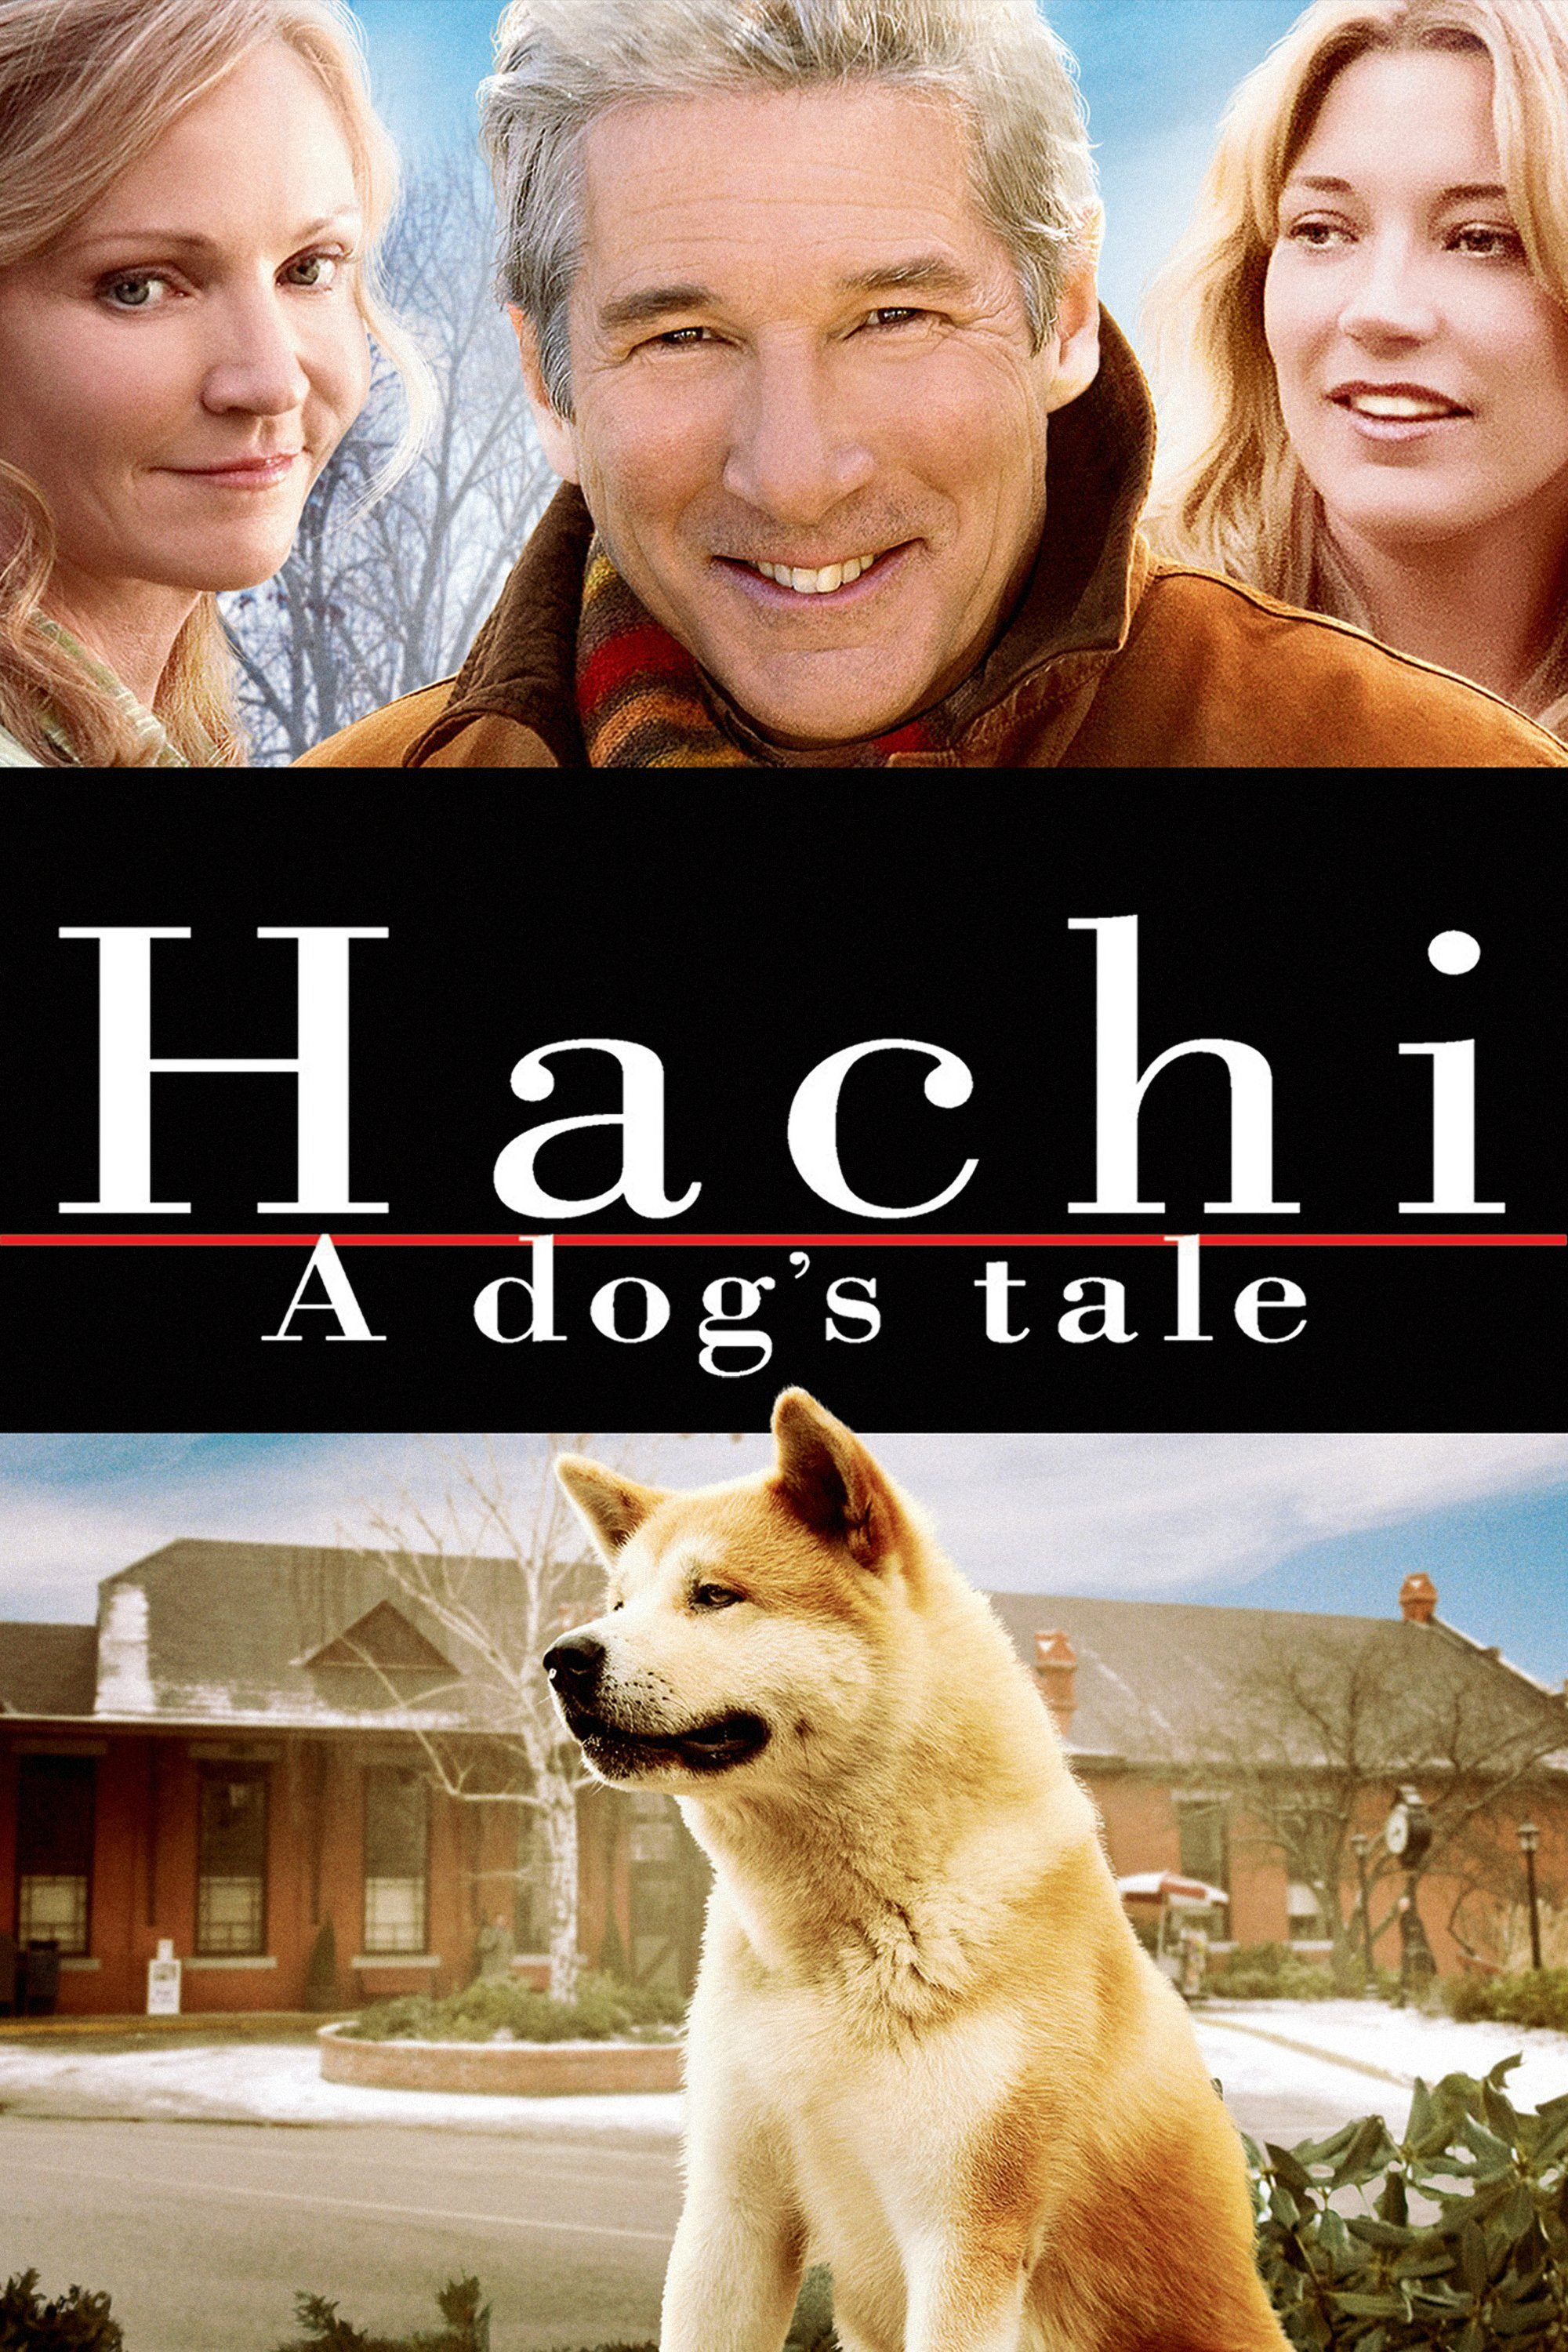 Hachi A Dog's Tale in 2020 A dog's tale, Movies to